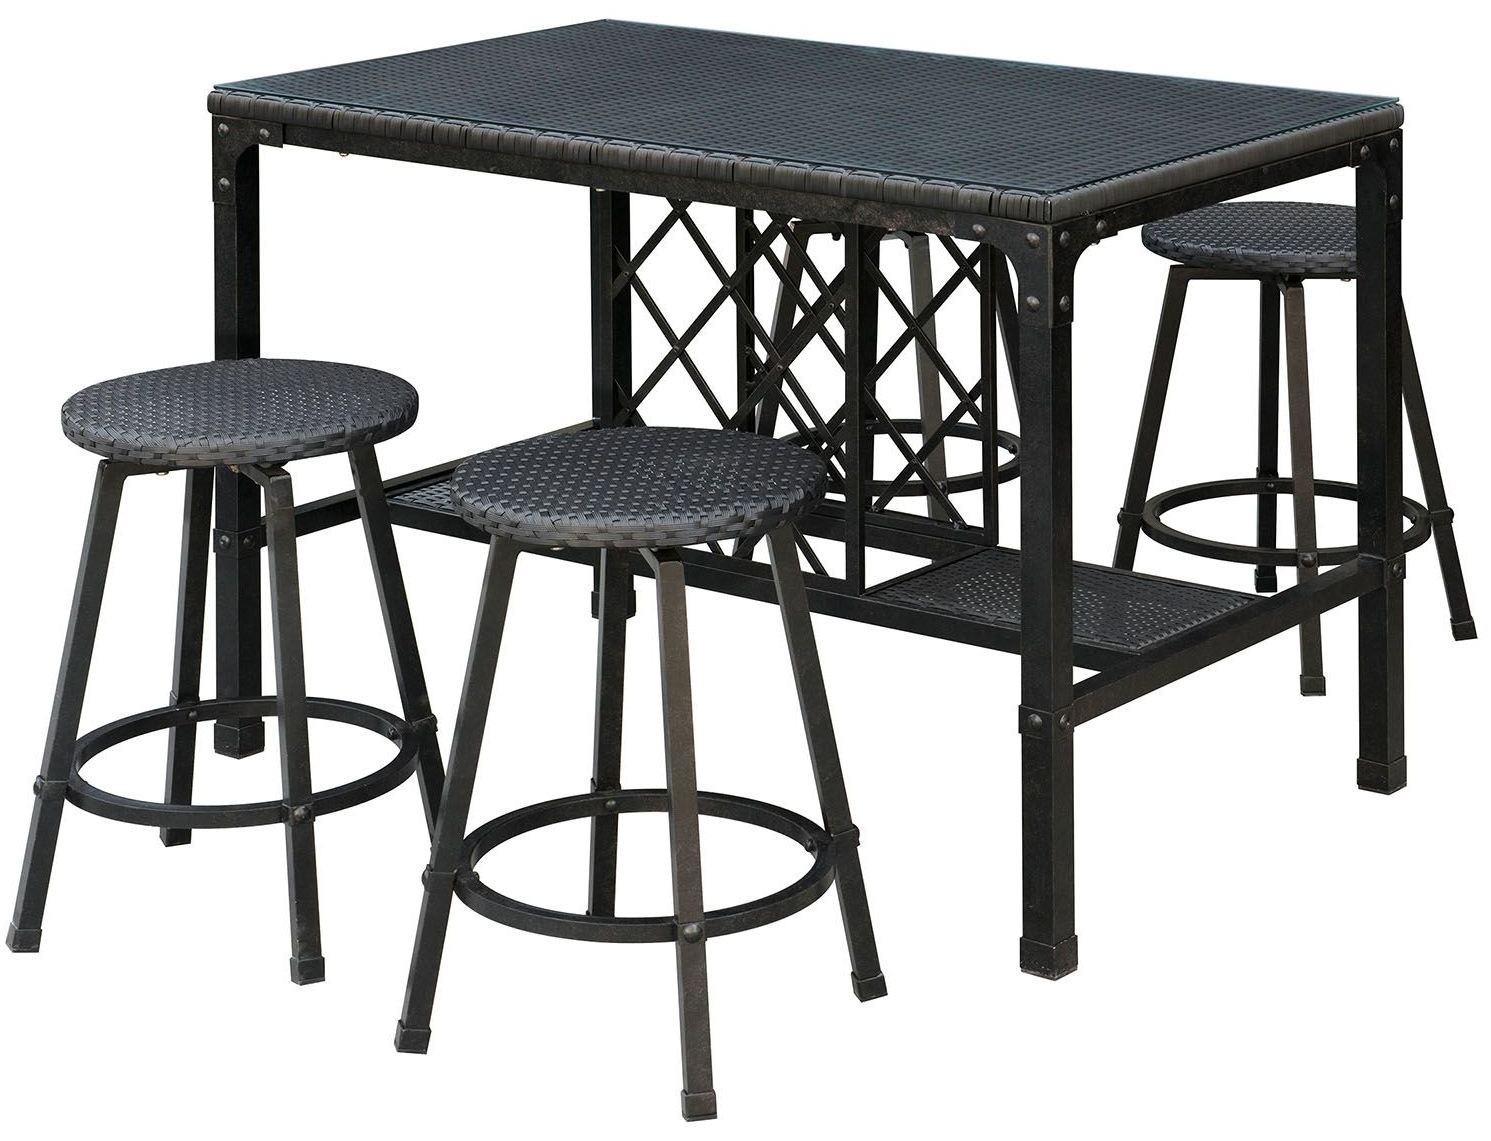 Counter Height Patio Dining Sets : Cheri Bronze 5 Piece Patio Counter Height Dining Set, CM-OT2318-PT ...